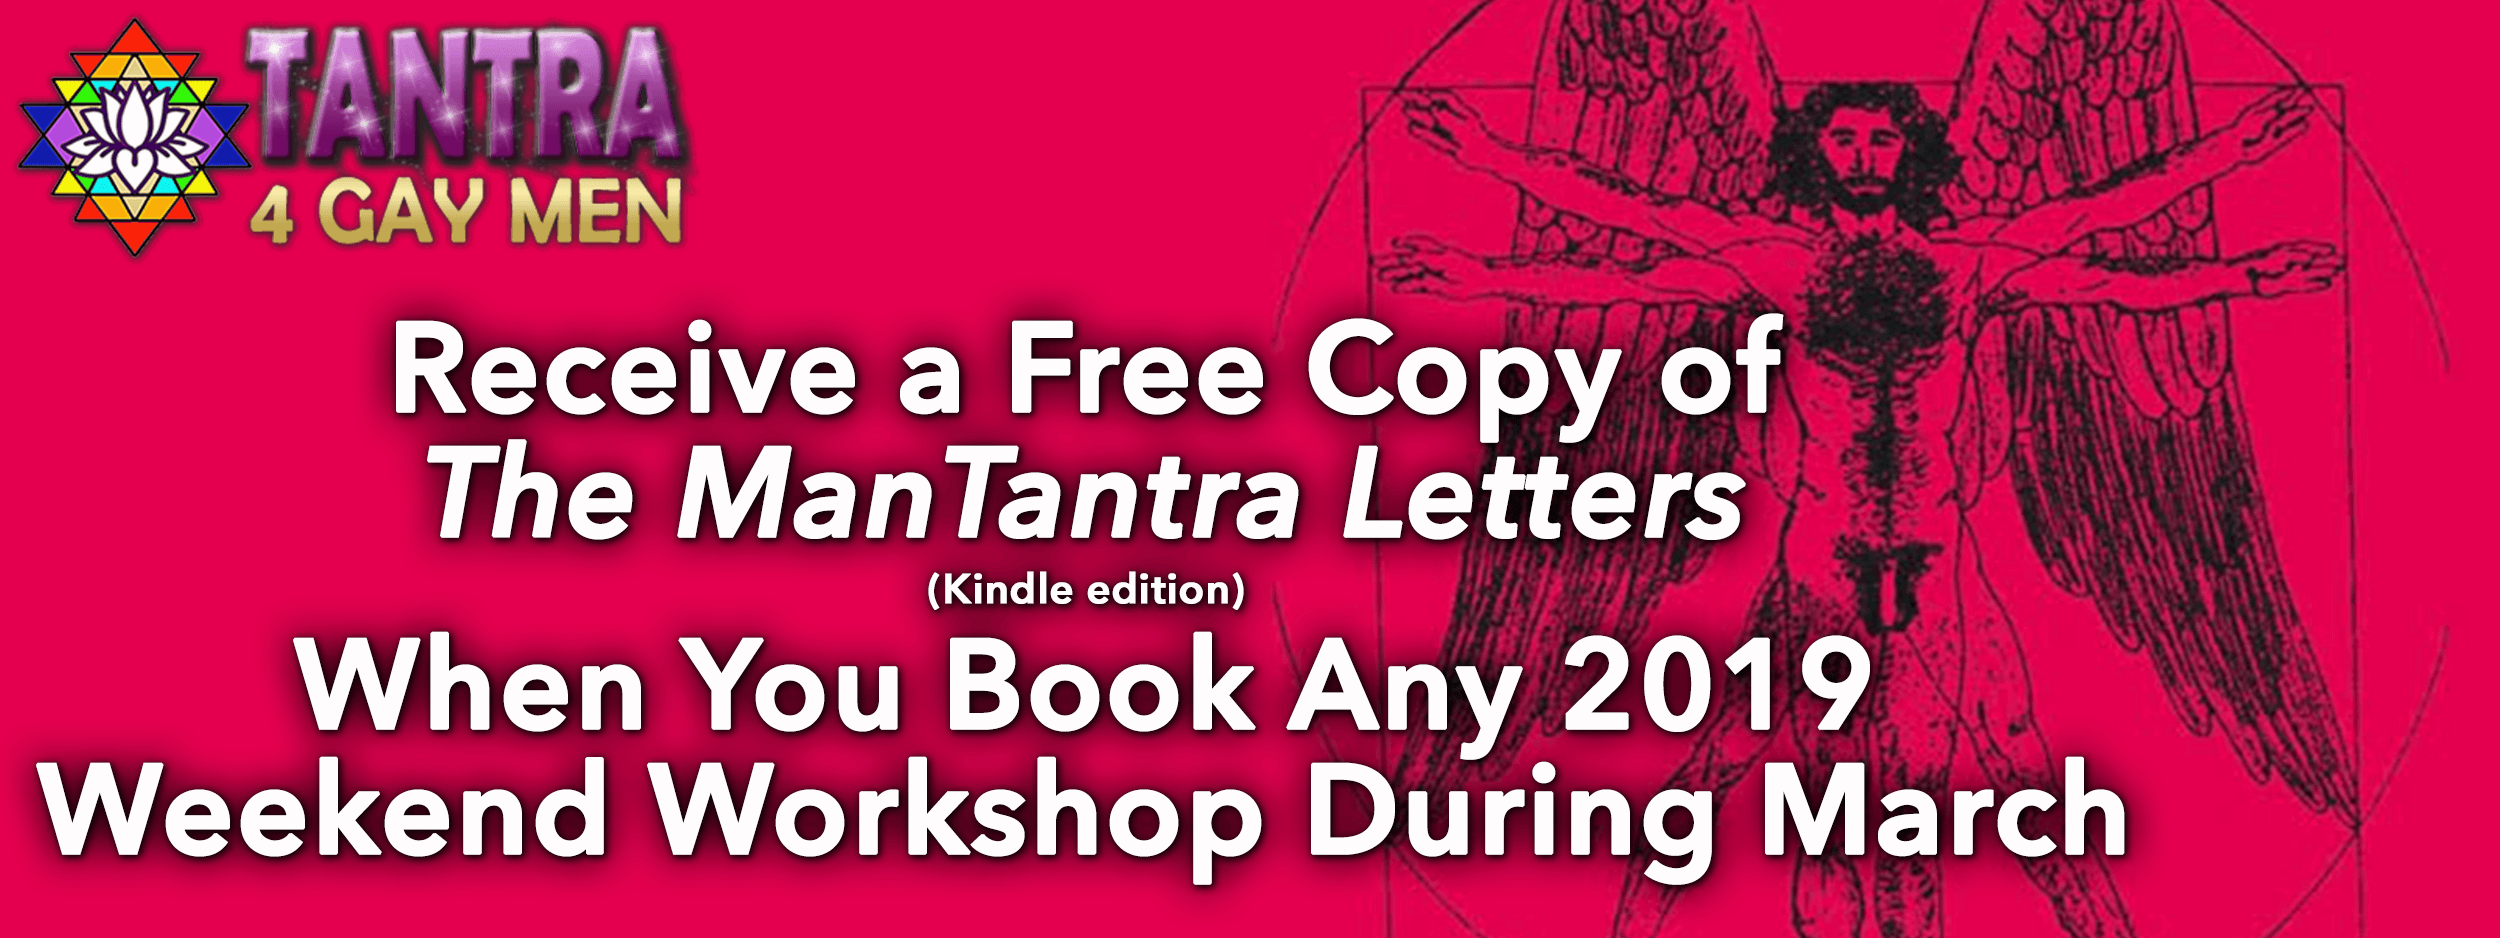 man_tantra_letters_in-page_banner_t4_b_3.1_1.png